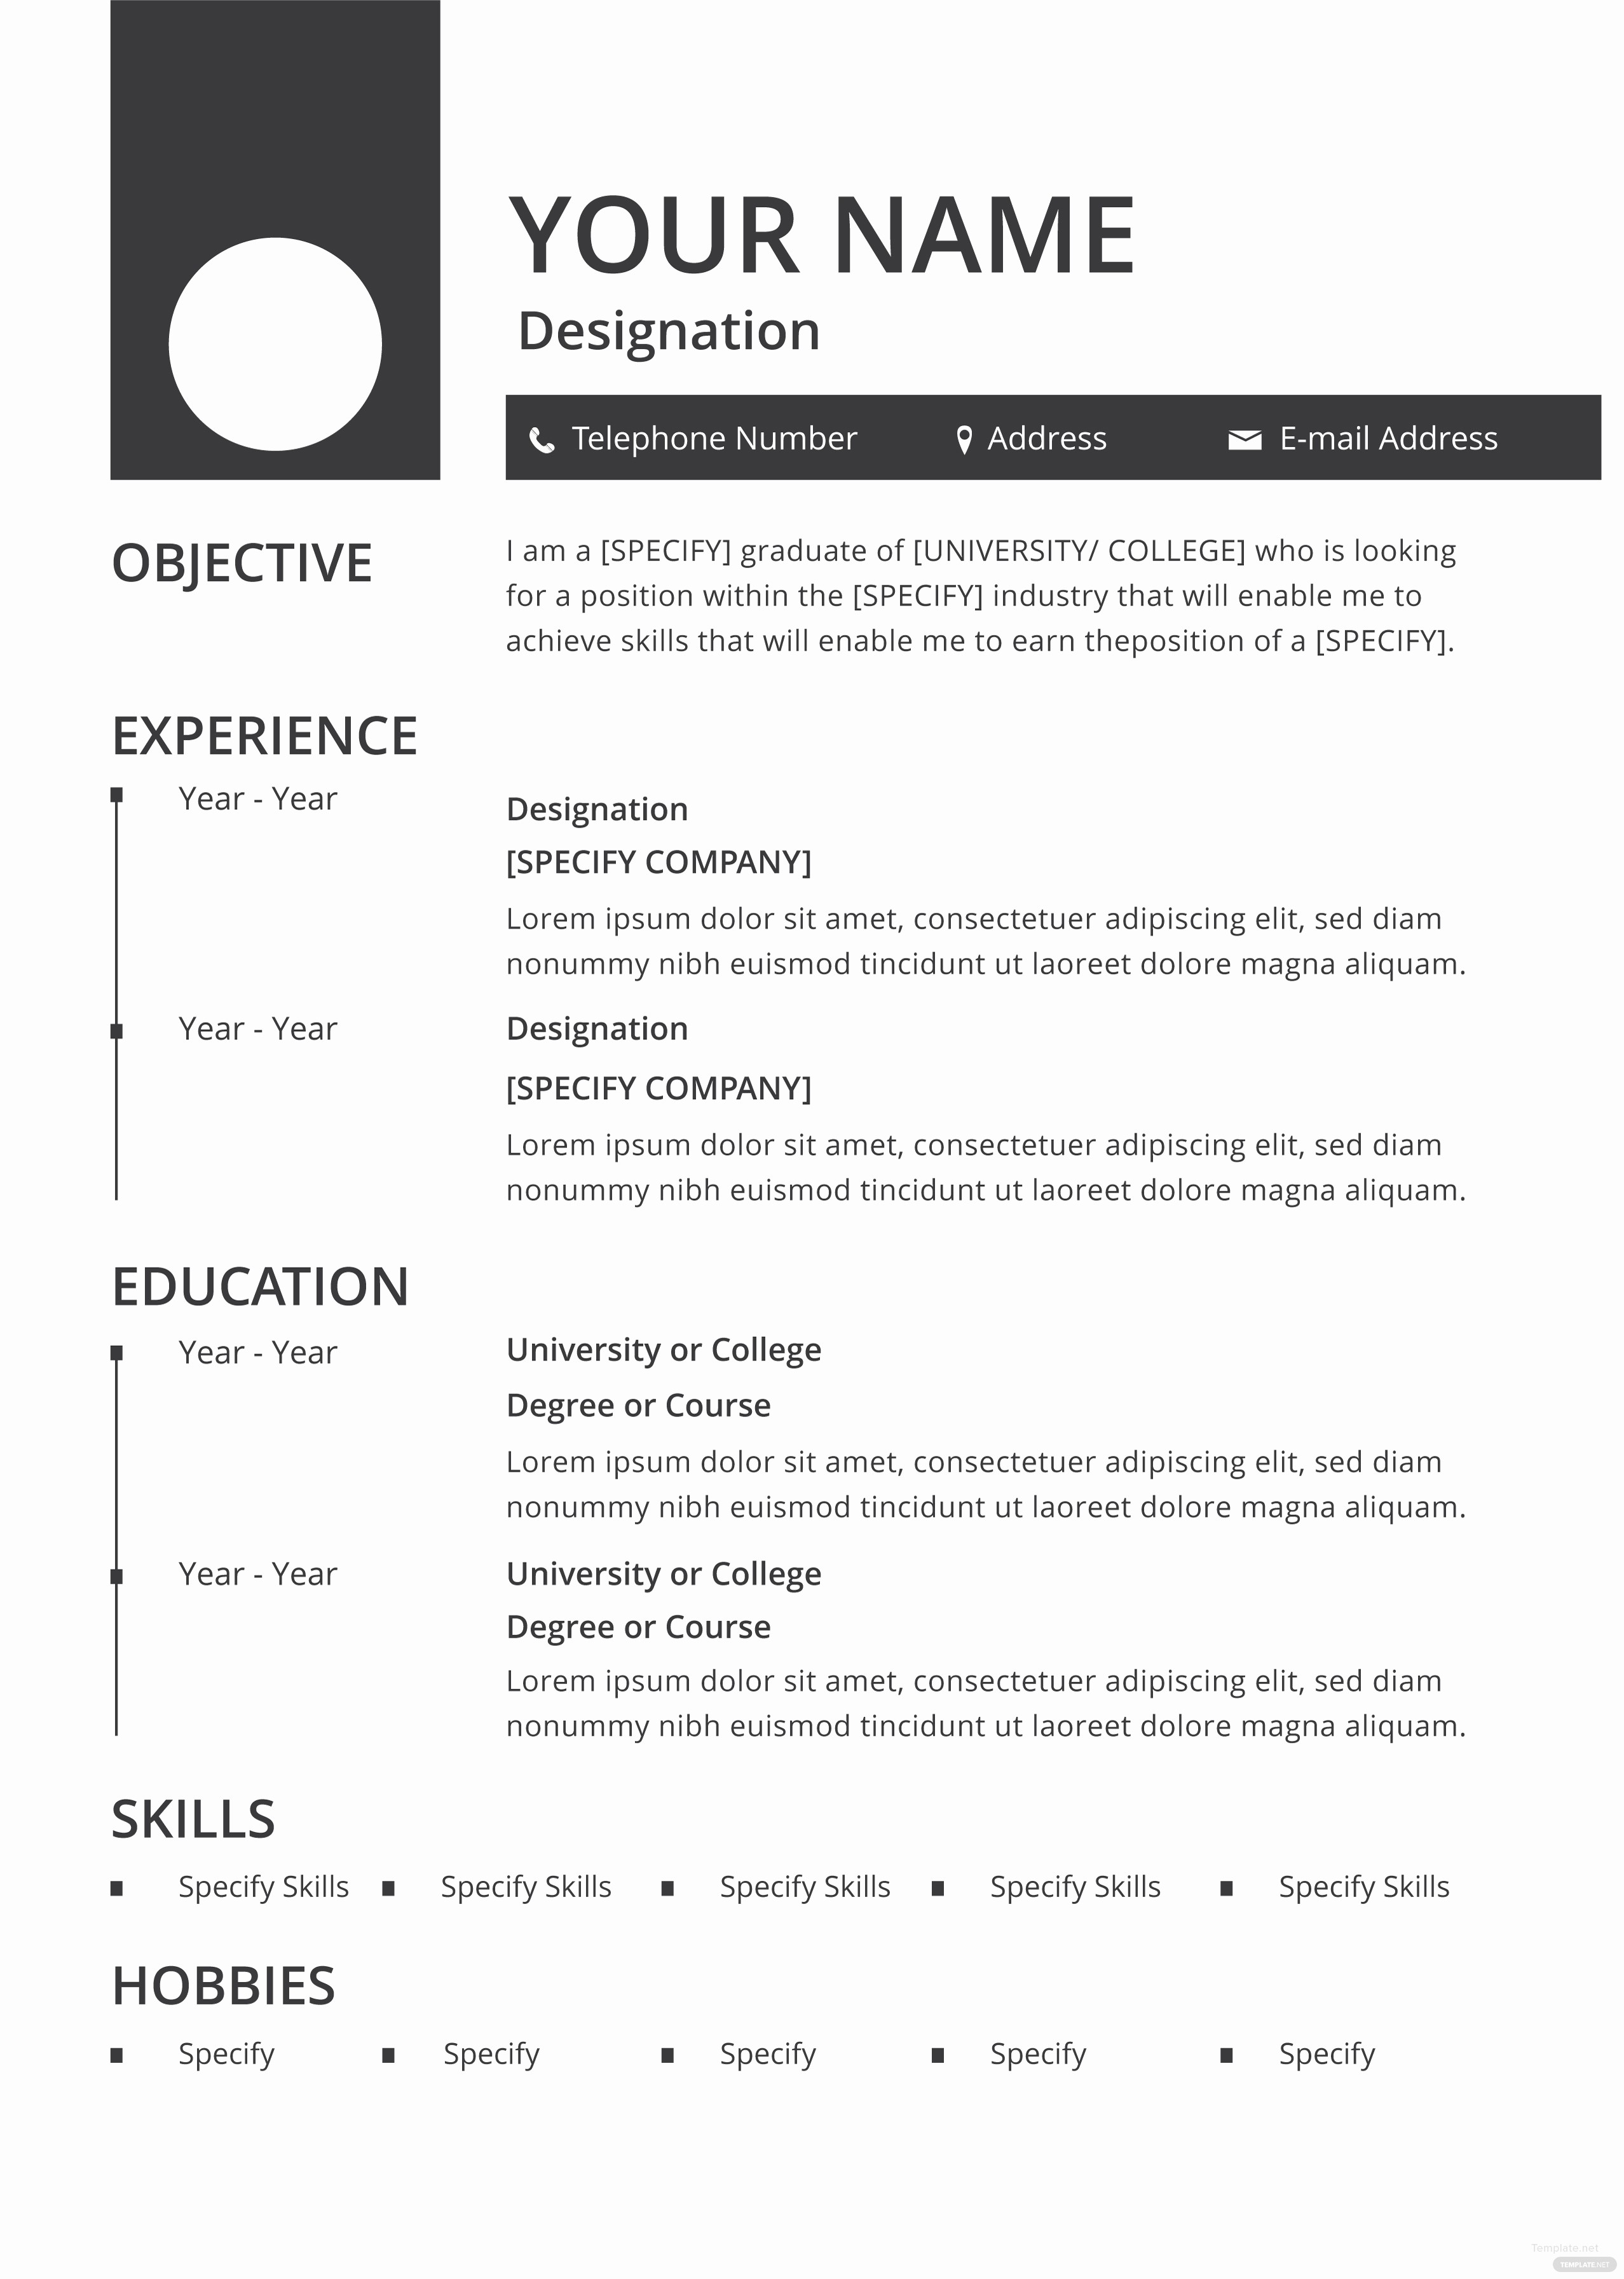 A Template for A Resume New Free Blank Resume and Cv Template In Adobe Shop